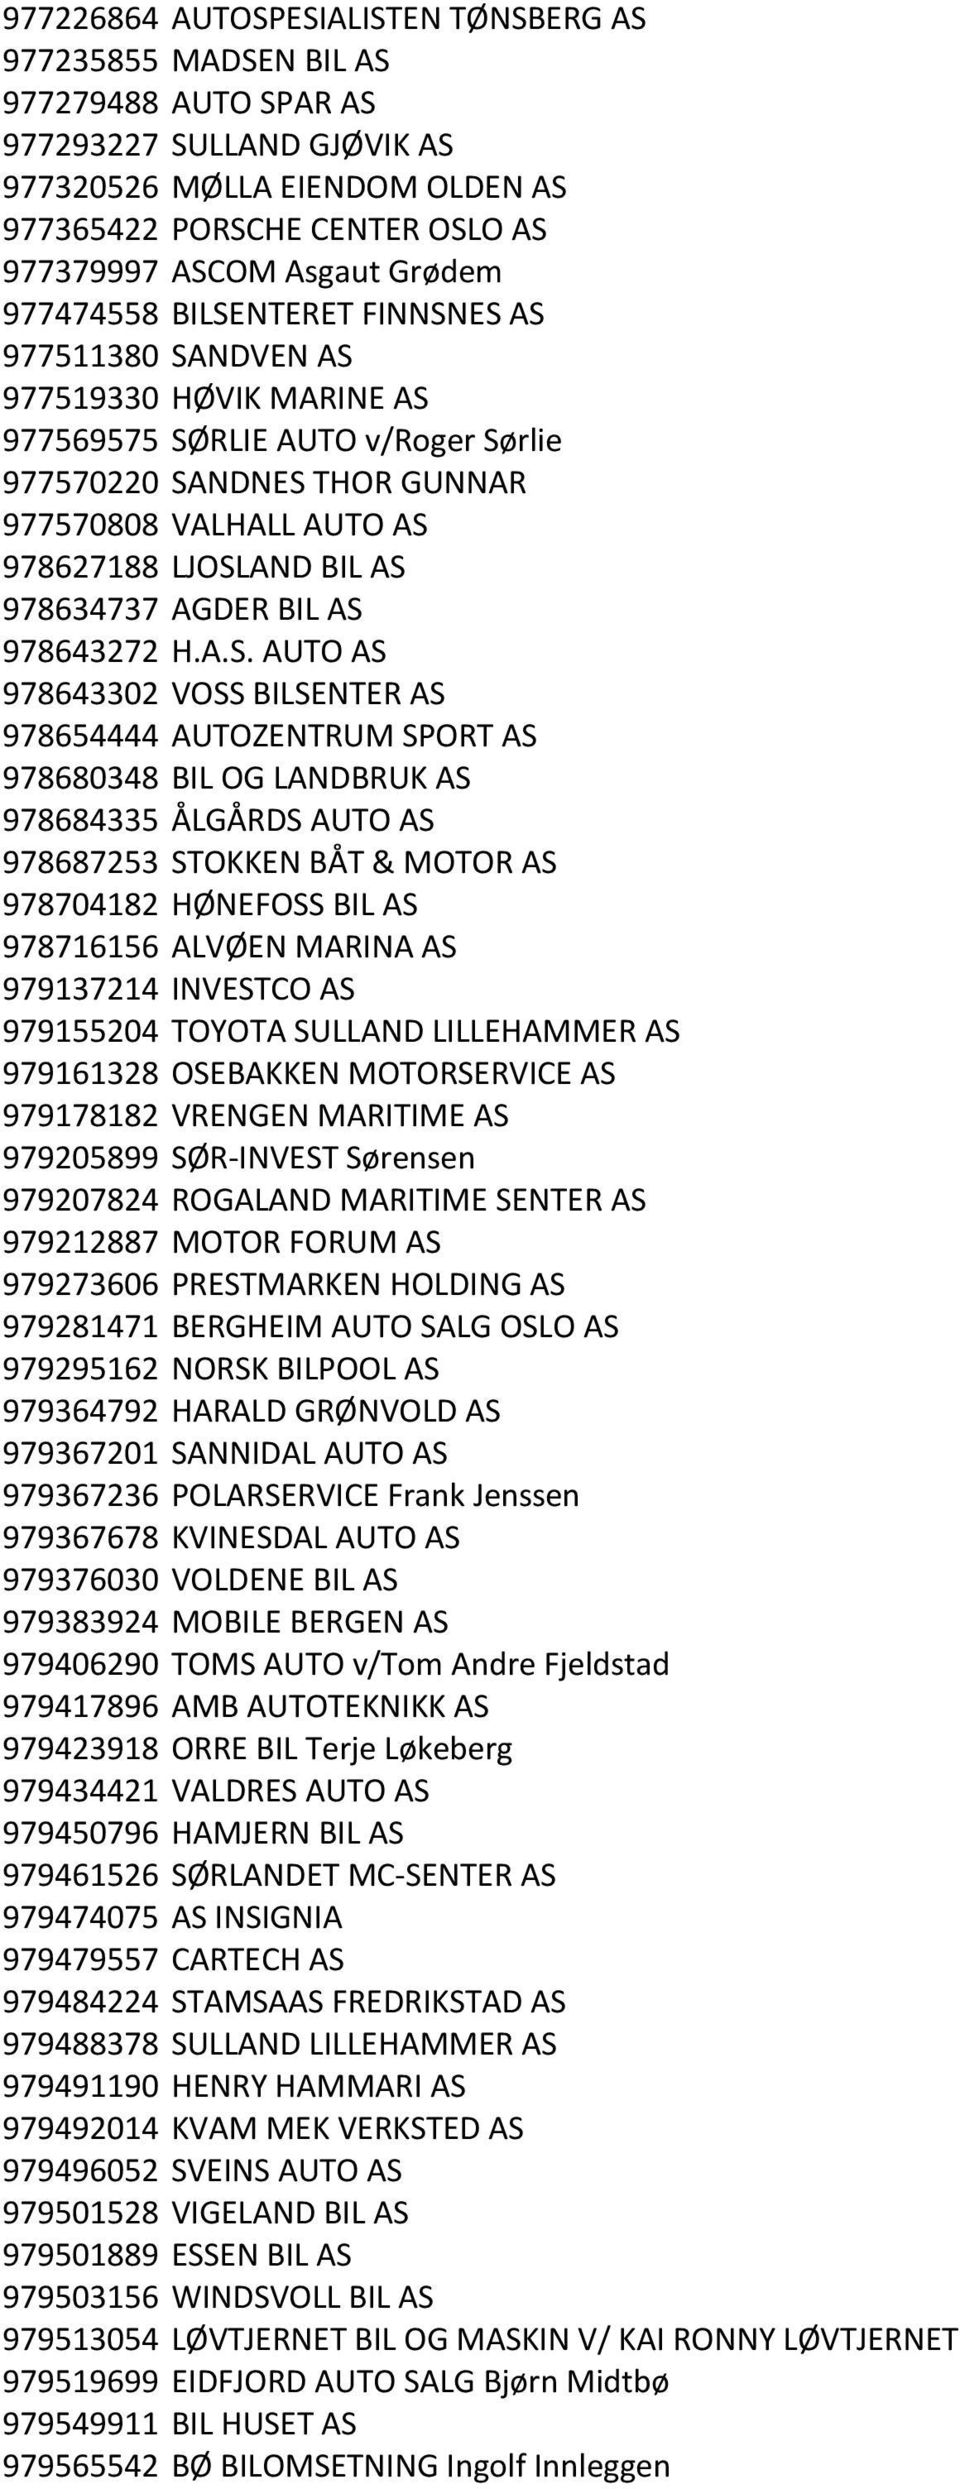 LJOSLAND BIL AS 978634737 AGDER BIL AS 978643272 H.A.S. AUTO AS 978643302 VOSS BILSENTER AS 978654444 AUTOZENTRUM SPORT AS 978680348 BIL OG LANDBRUK AS 978684335 ÅLGÅRDS AUTO AS 978687253 STOKKEN BÅT